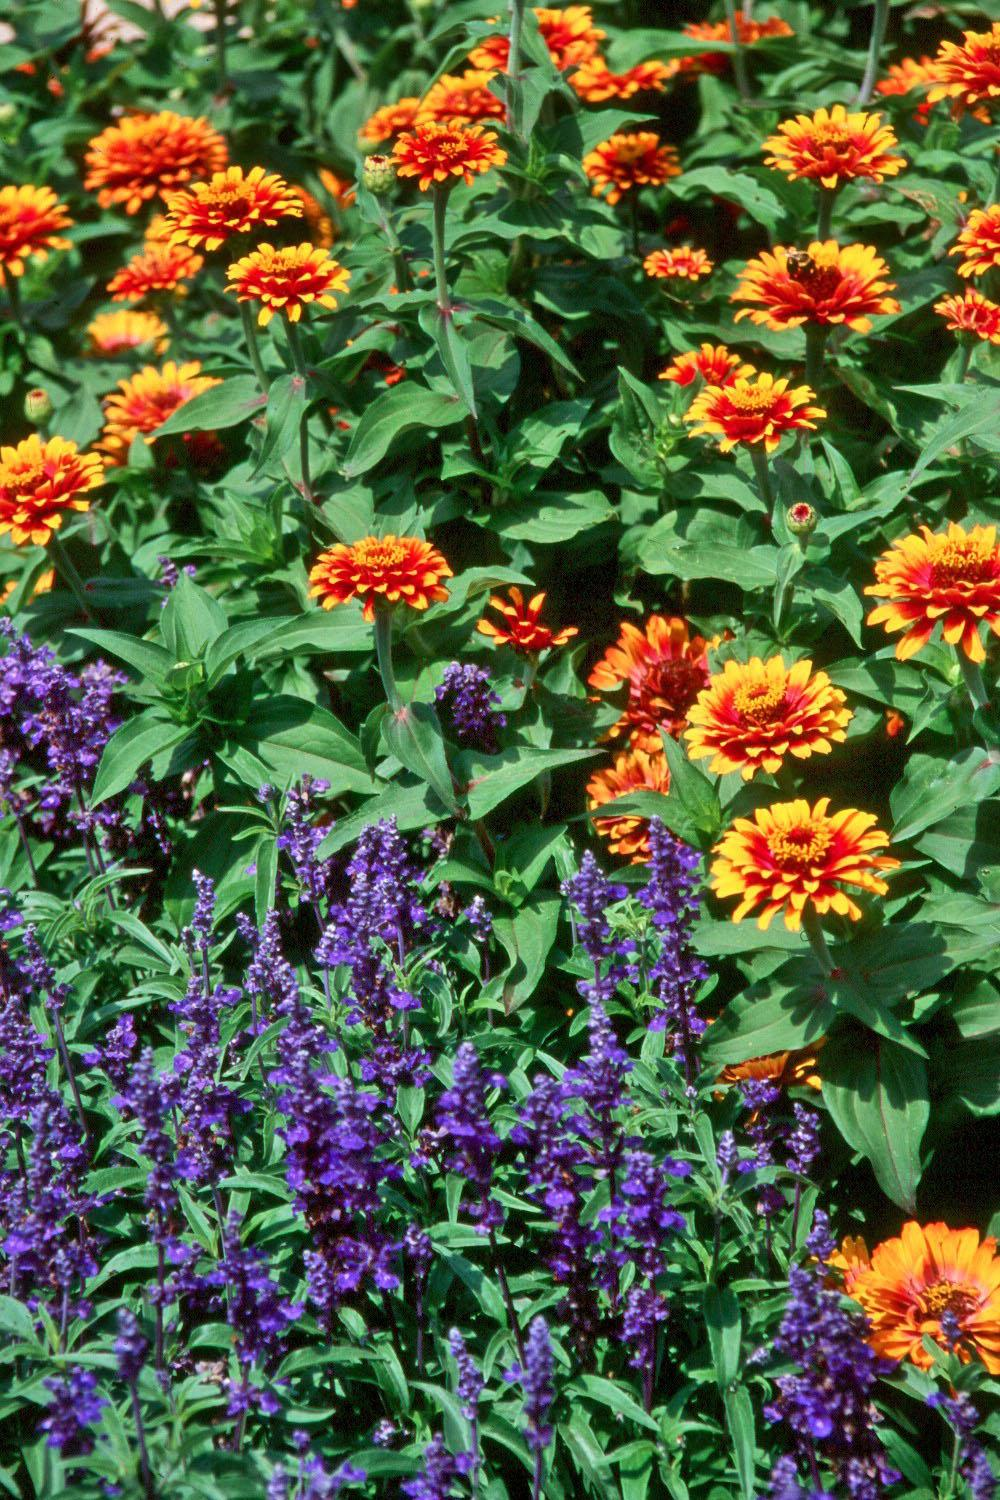 Zowie! Yellow Flame zinnia and Evolution salvia make a dynamic duo in this landscape. Both make great cut flowers for the vase and can be dried for an everlasting bouquet. Unlike any other zinnia, each Zowie bloom flames with a scarlet-rose center and yellow petal edges. Evolution provides a slightly richer color that Victoria Blue salvia.